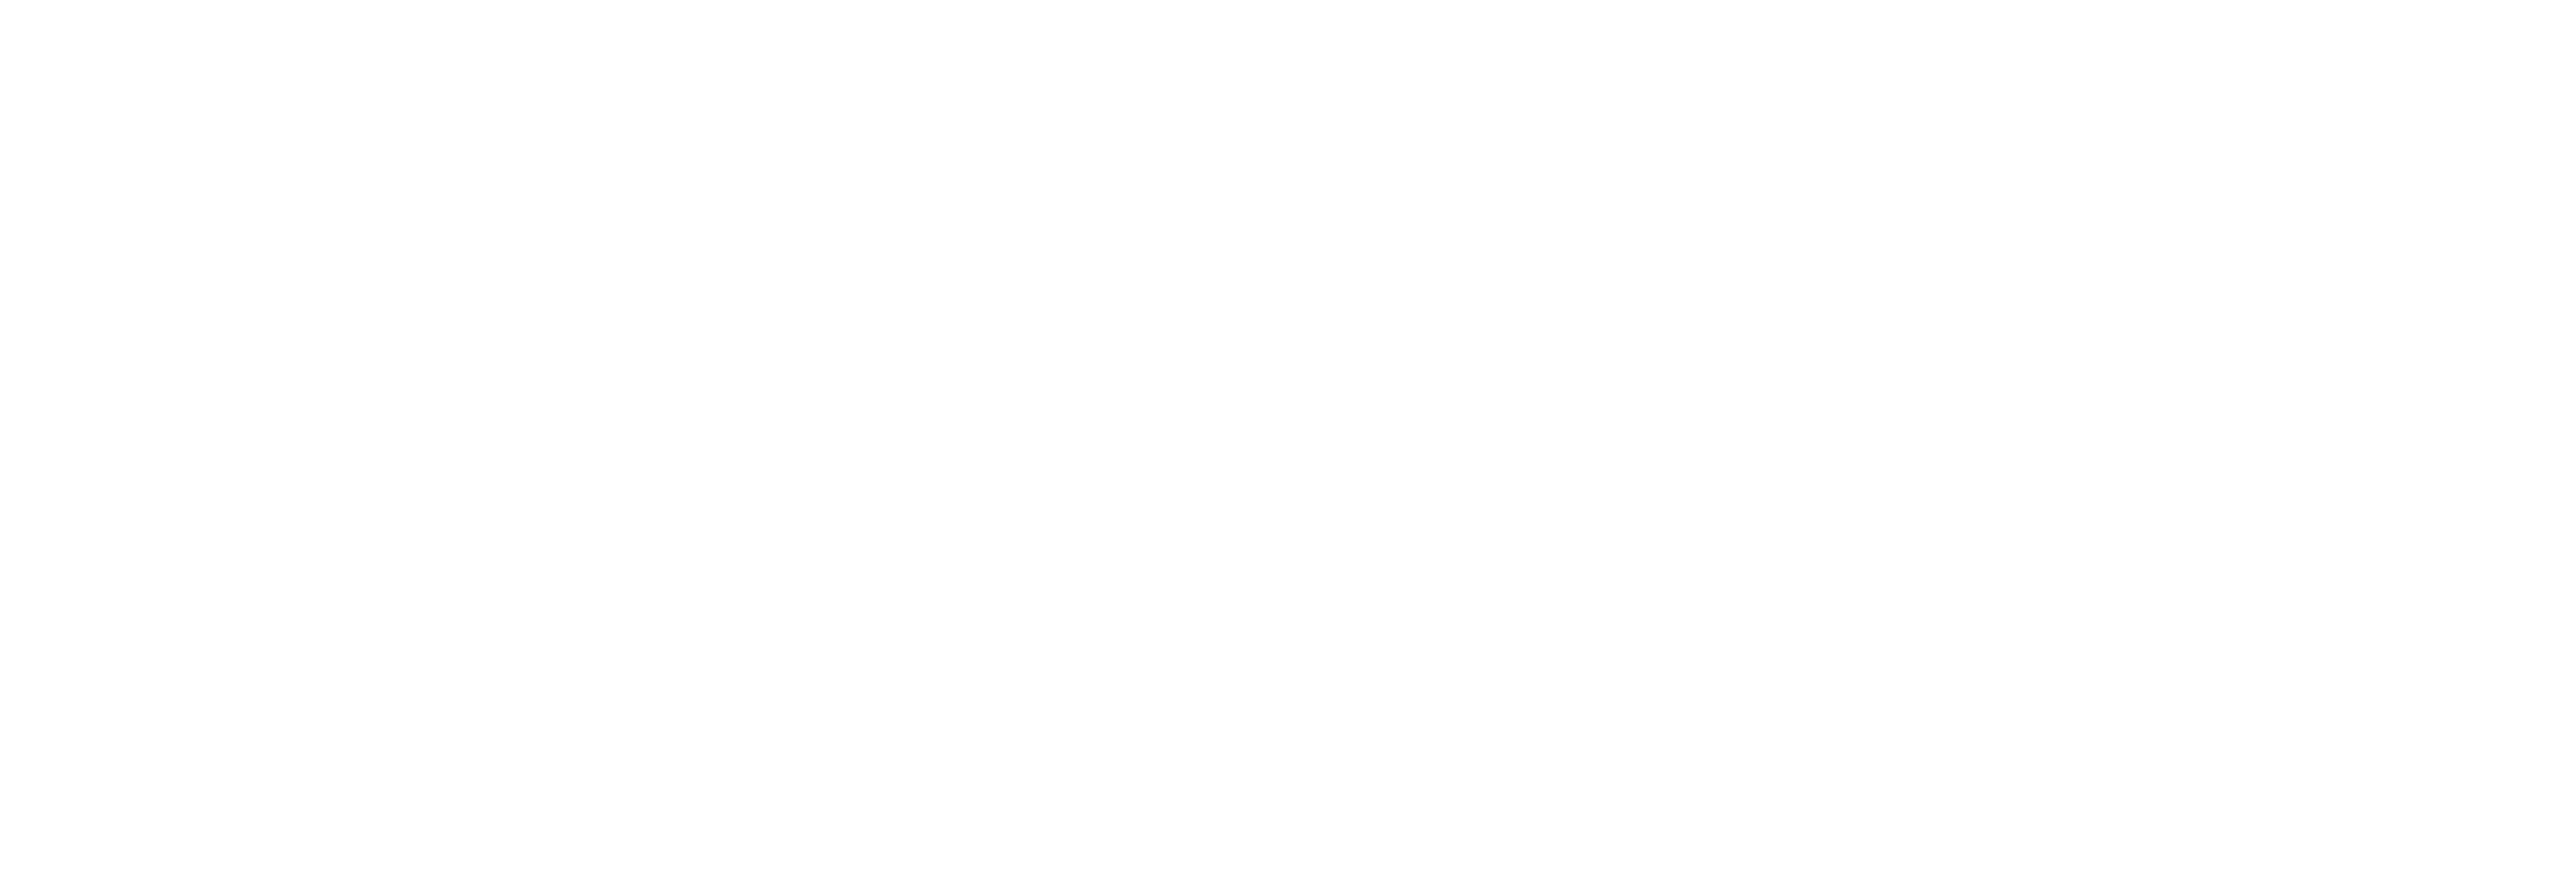 Multiplex digital d.o.o.